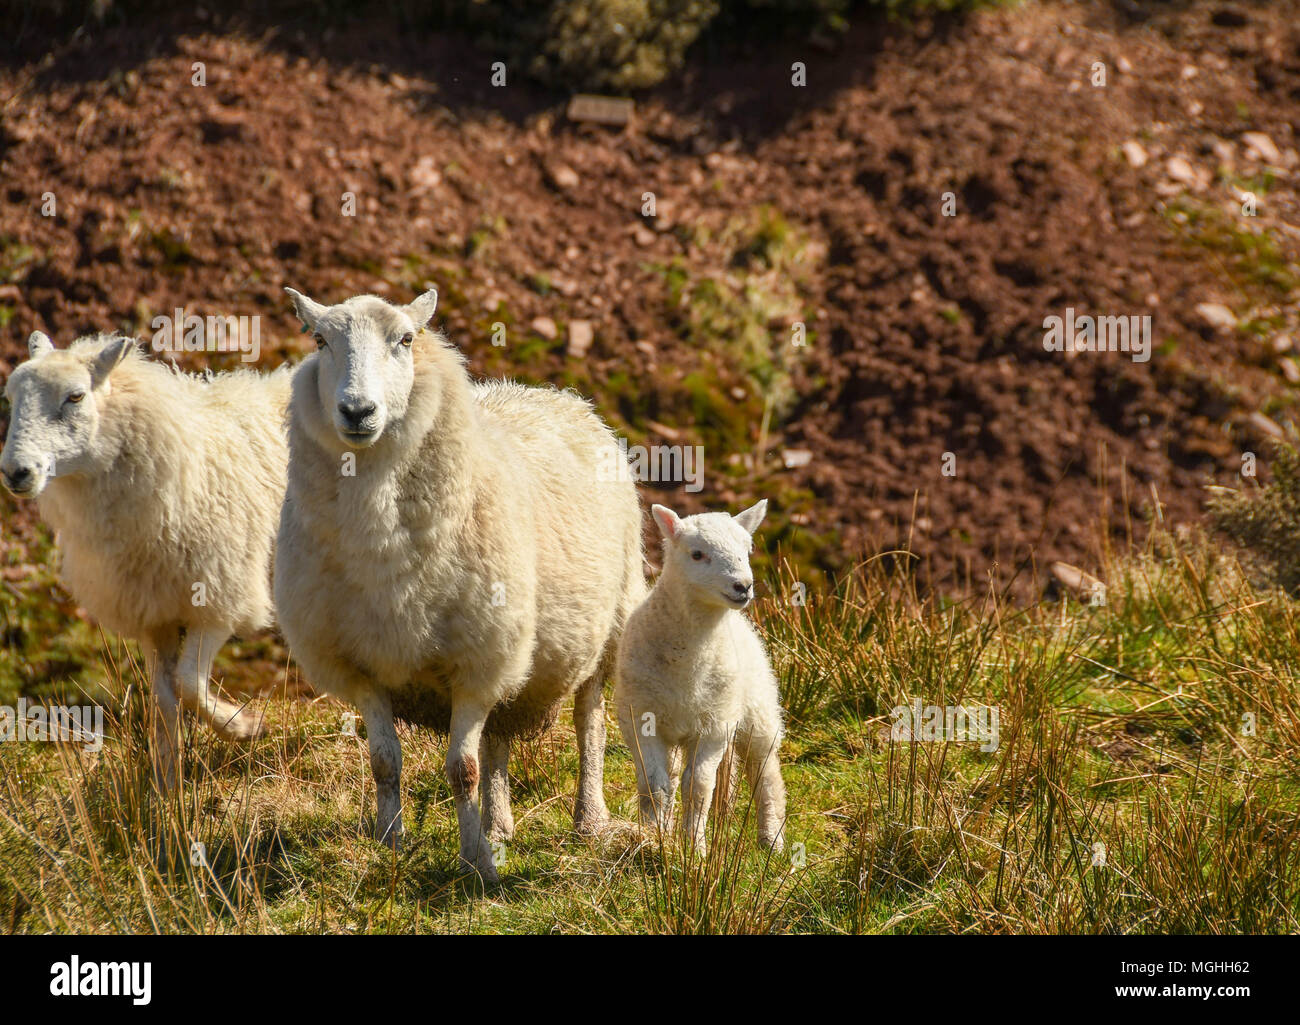 Lamb with its mother and another ewe - Stock Image